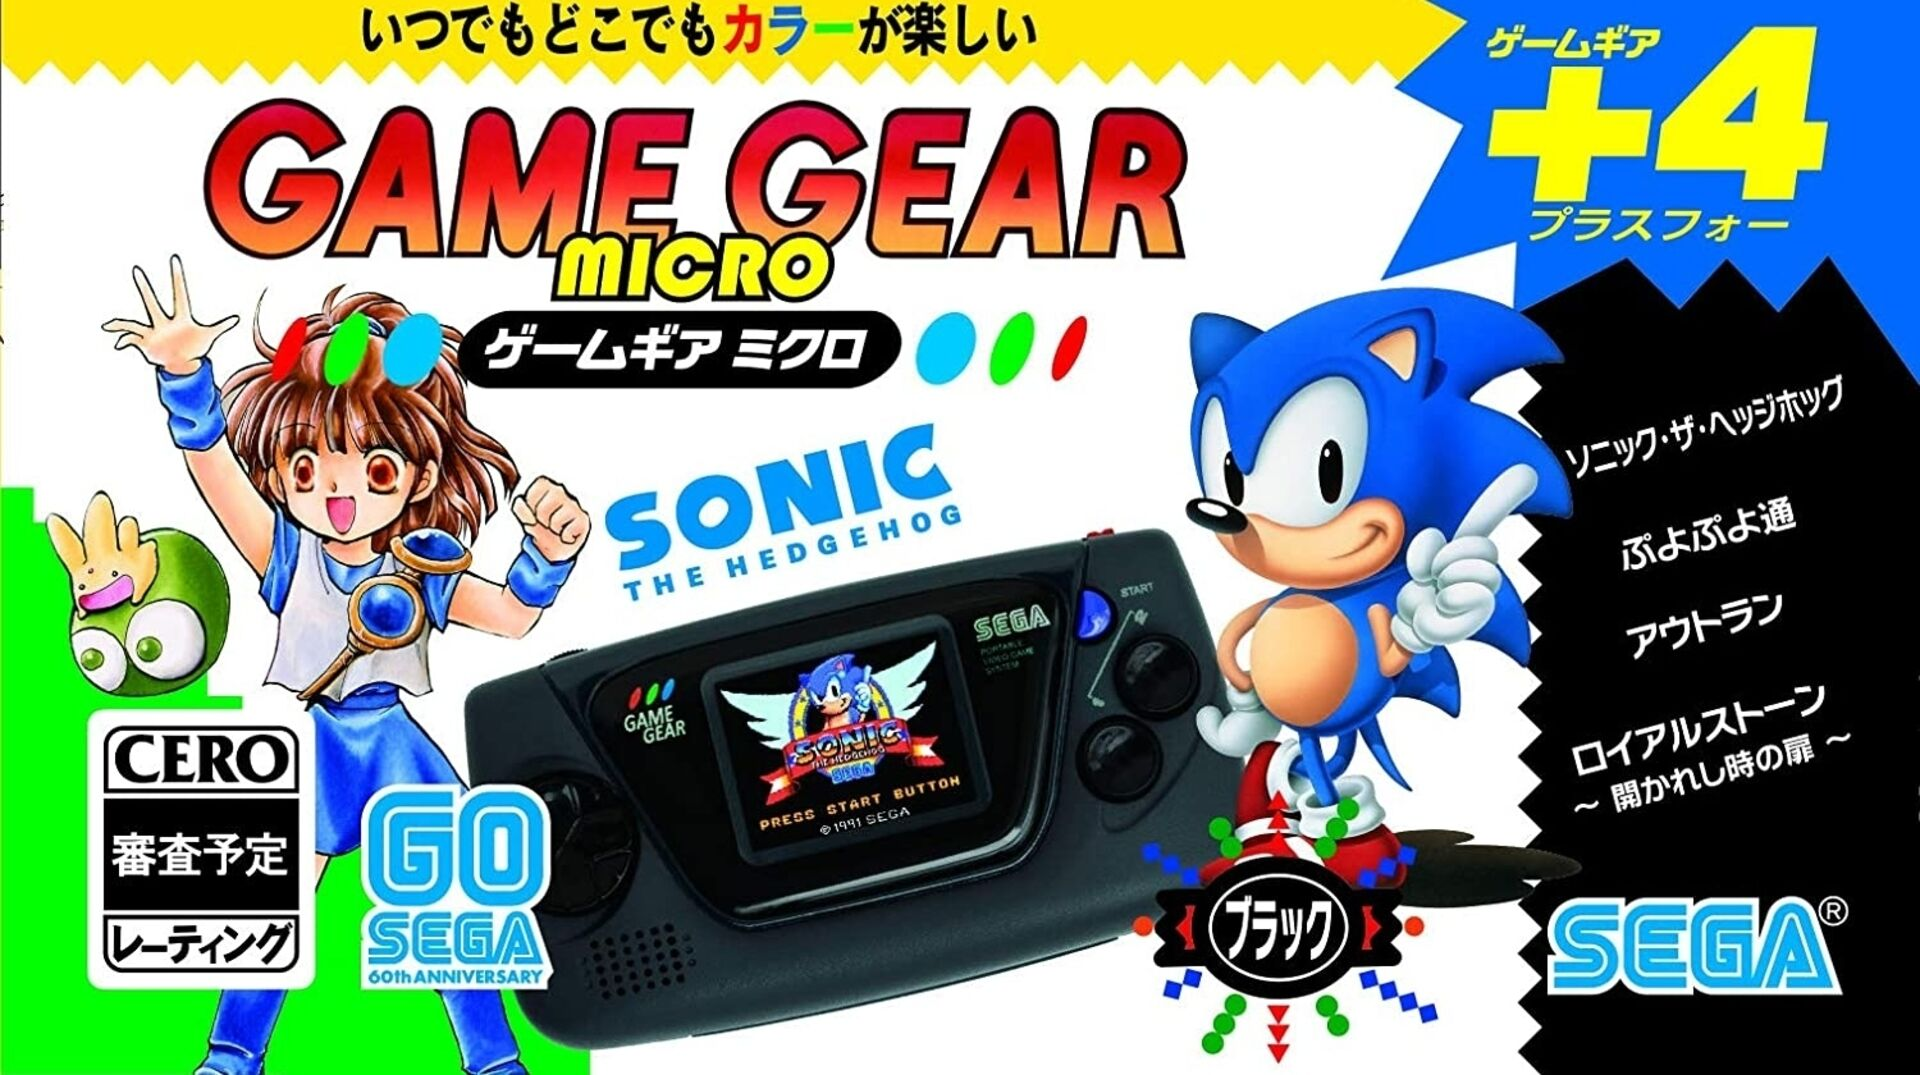 Sega Celebrates Its 60th Anniversary With A Game Gear Micro Eurogamer Net